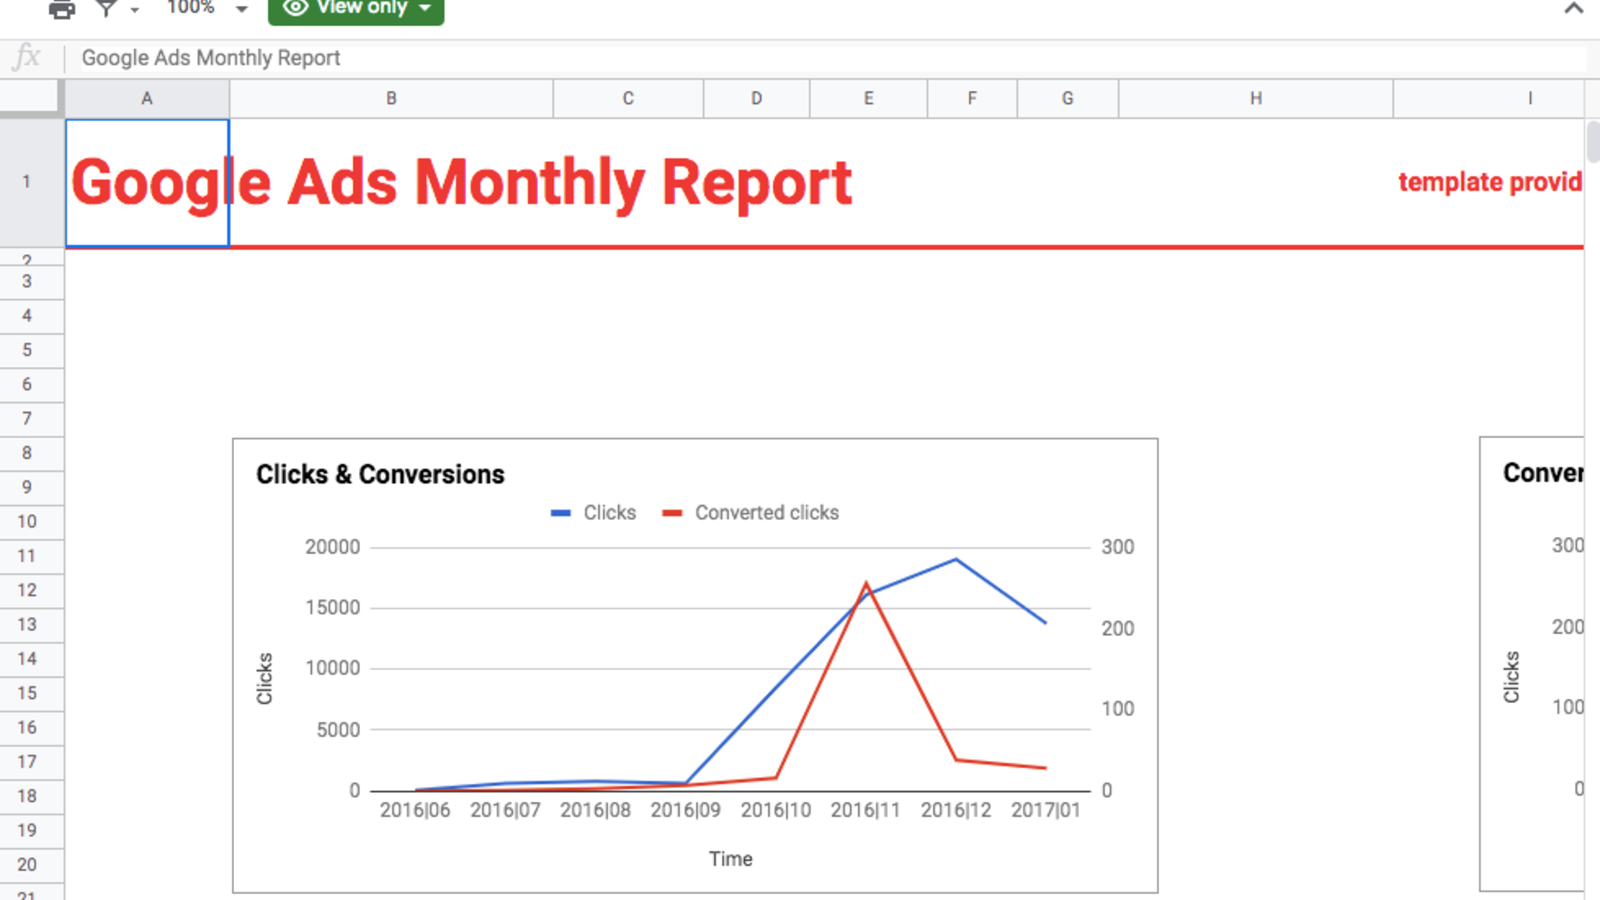 Google Ads Monthly Report